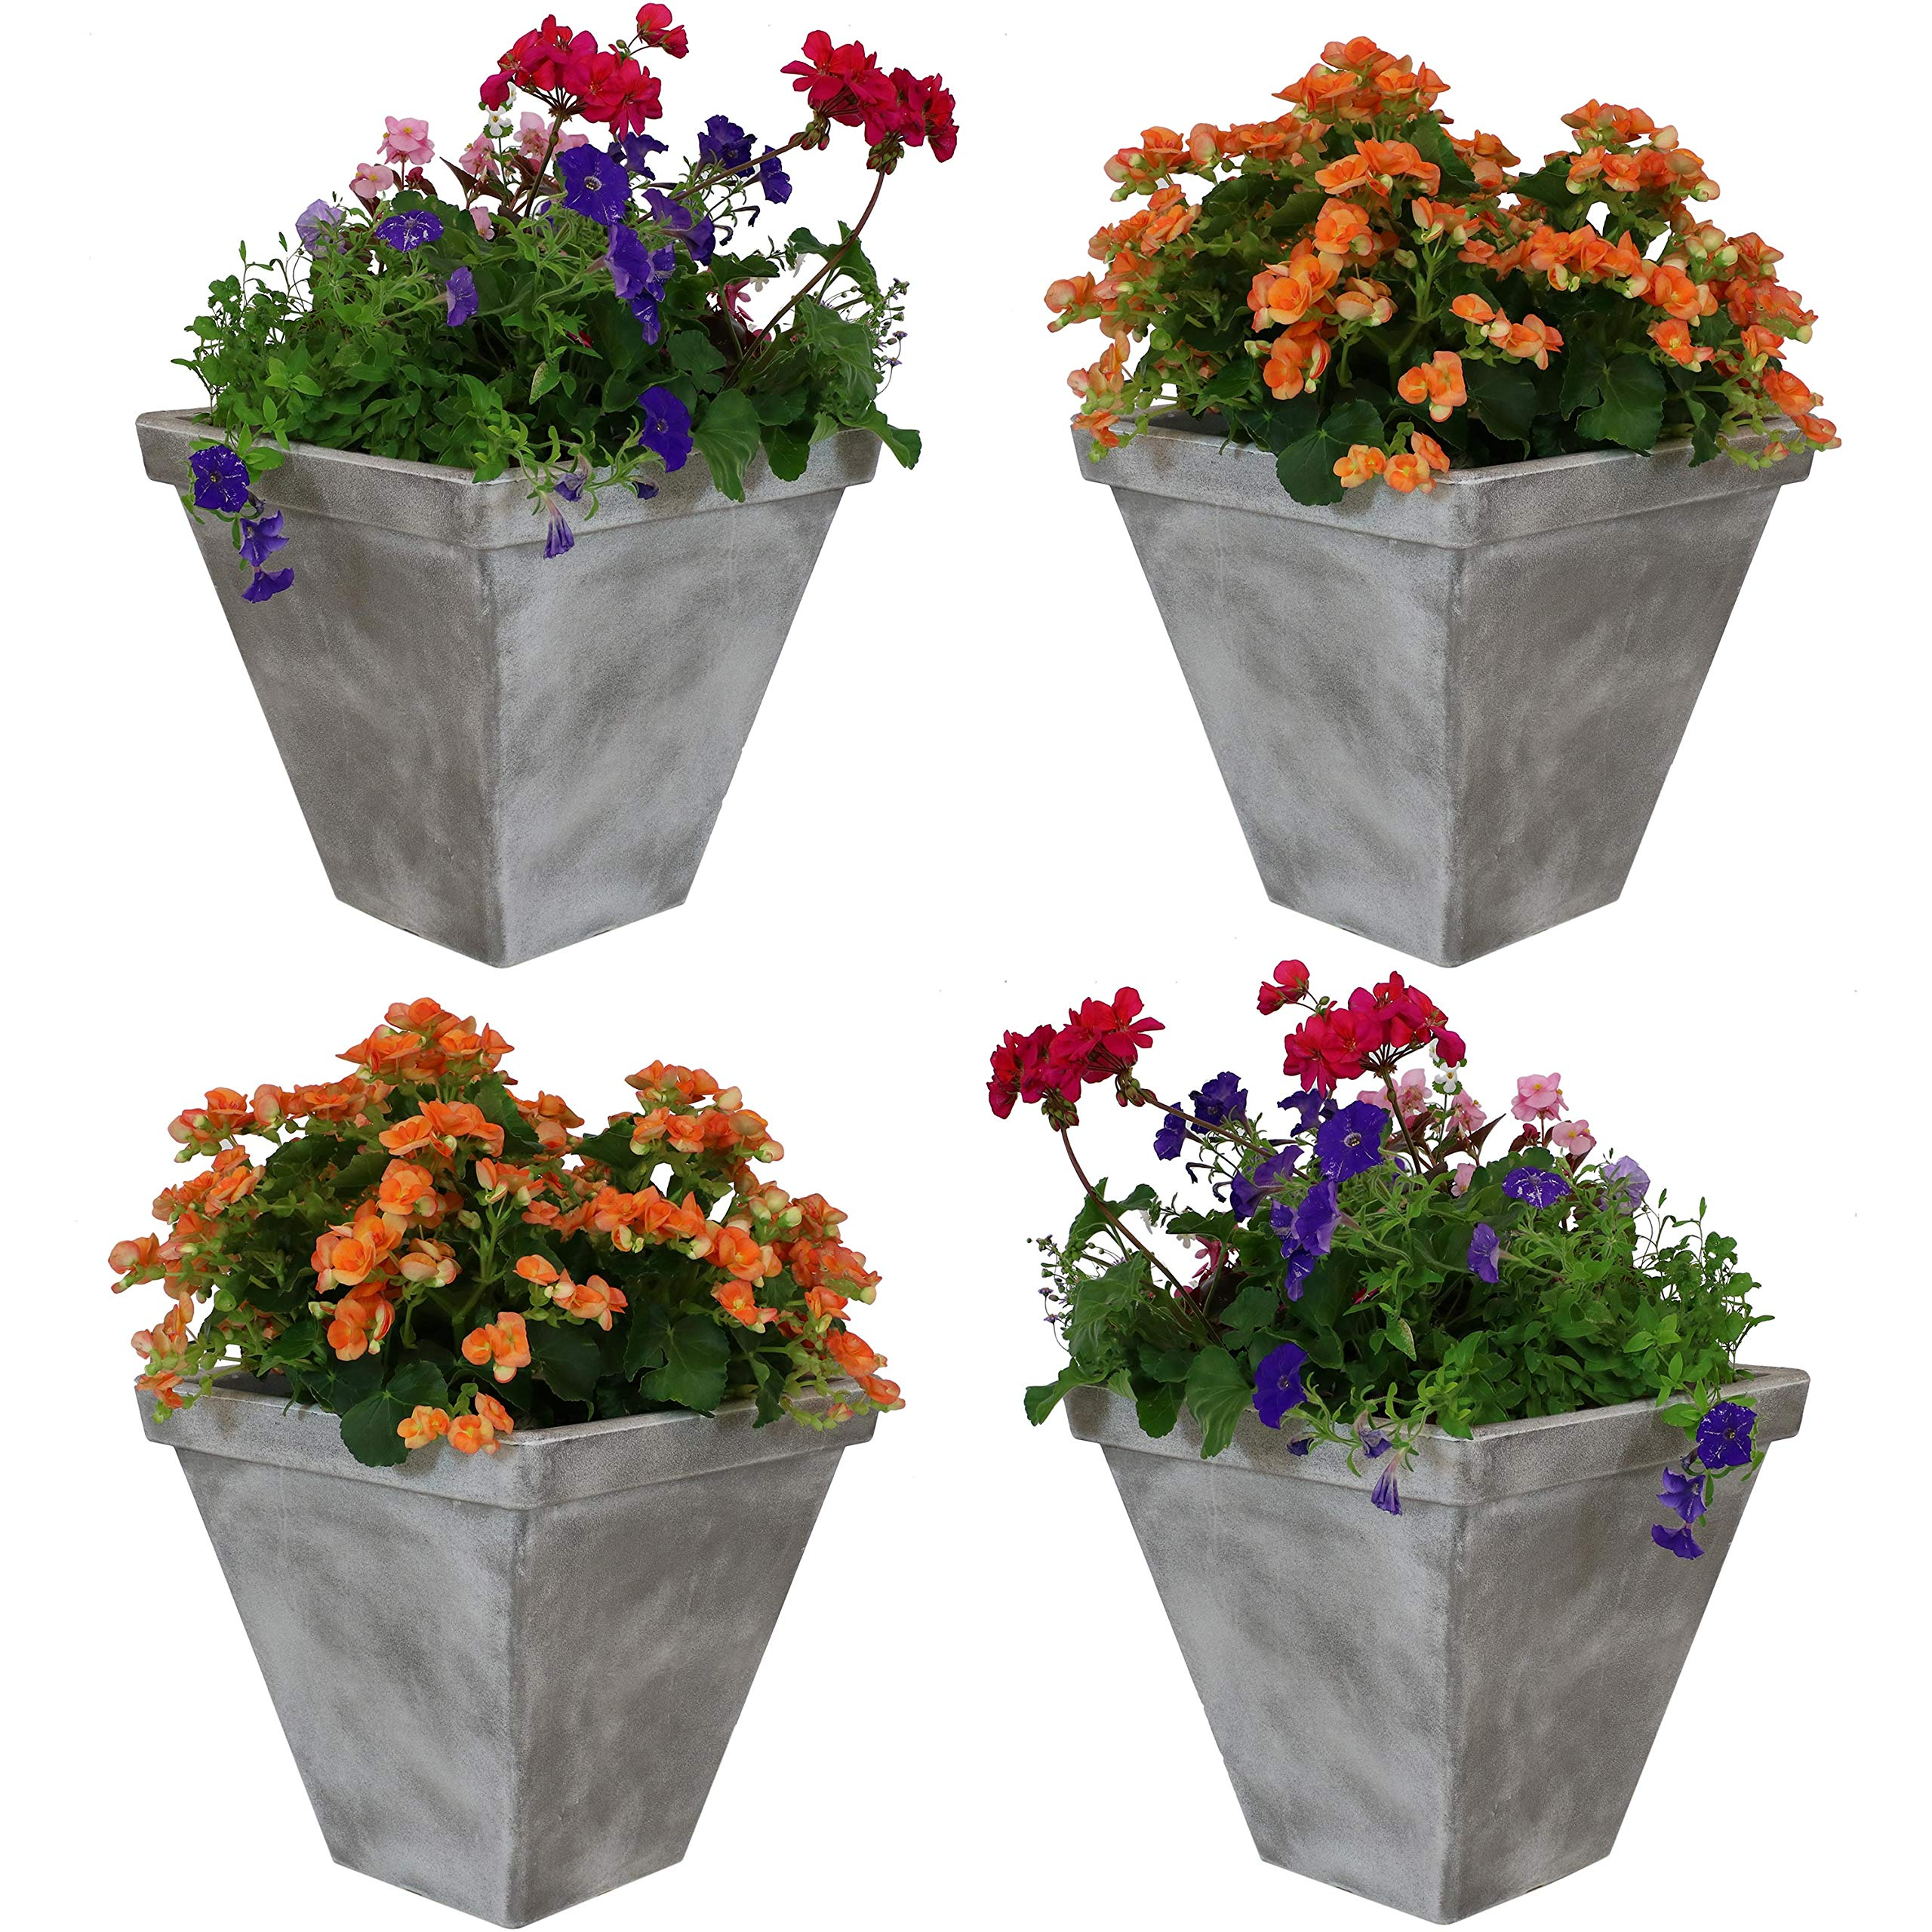 Sunnydaze Hamilton Outdoor/Indoor Planter Pot, Heavy-Duty Double-Walled Polyresin with UV-Resistant Antique Quarry Finish, Set of 4, 16-Inch